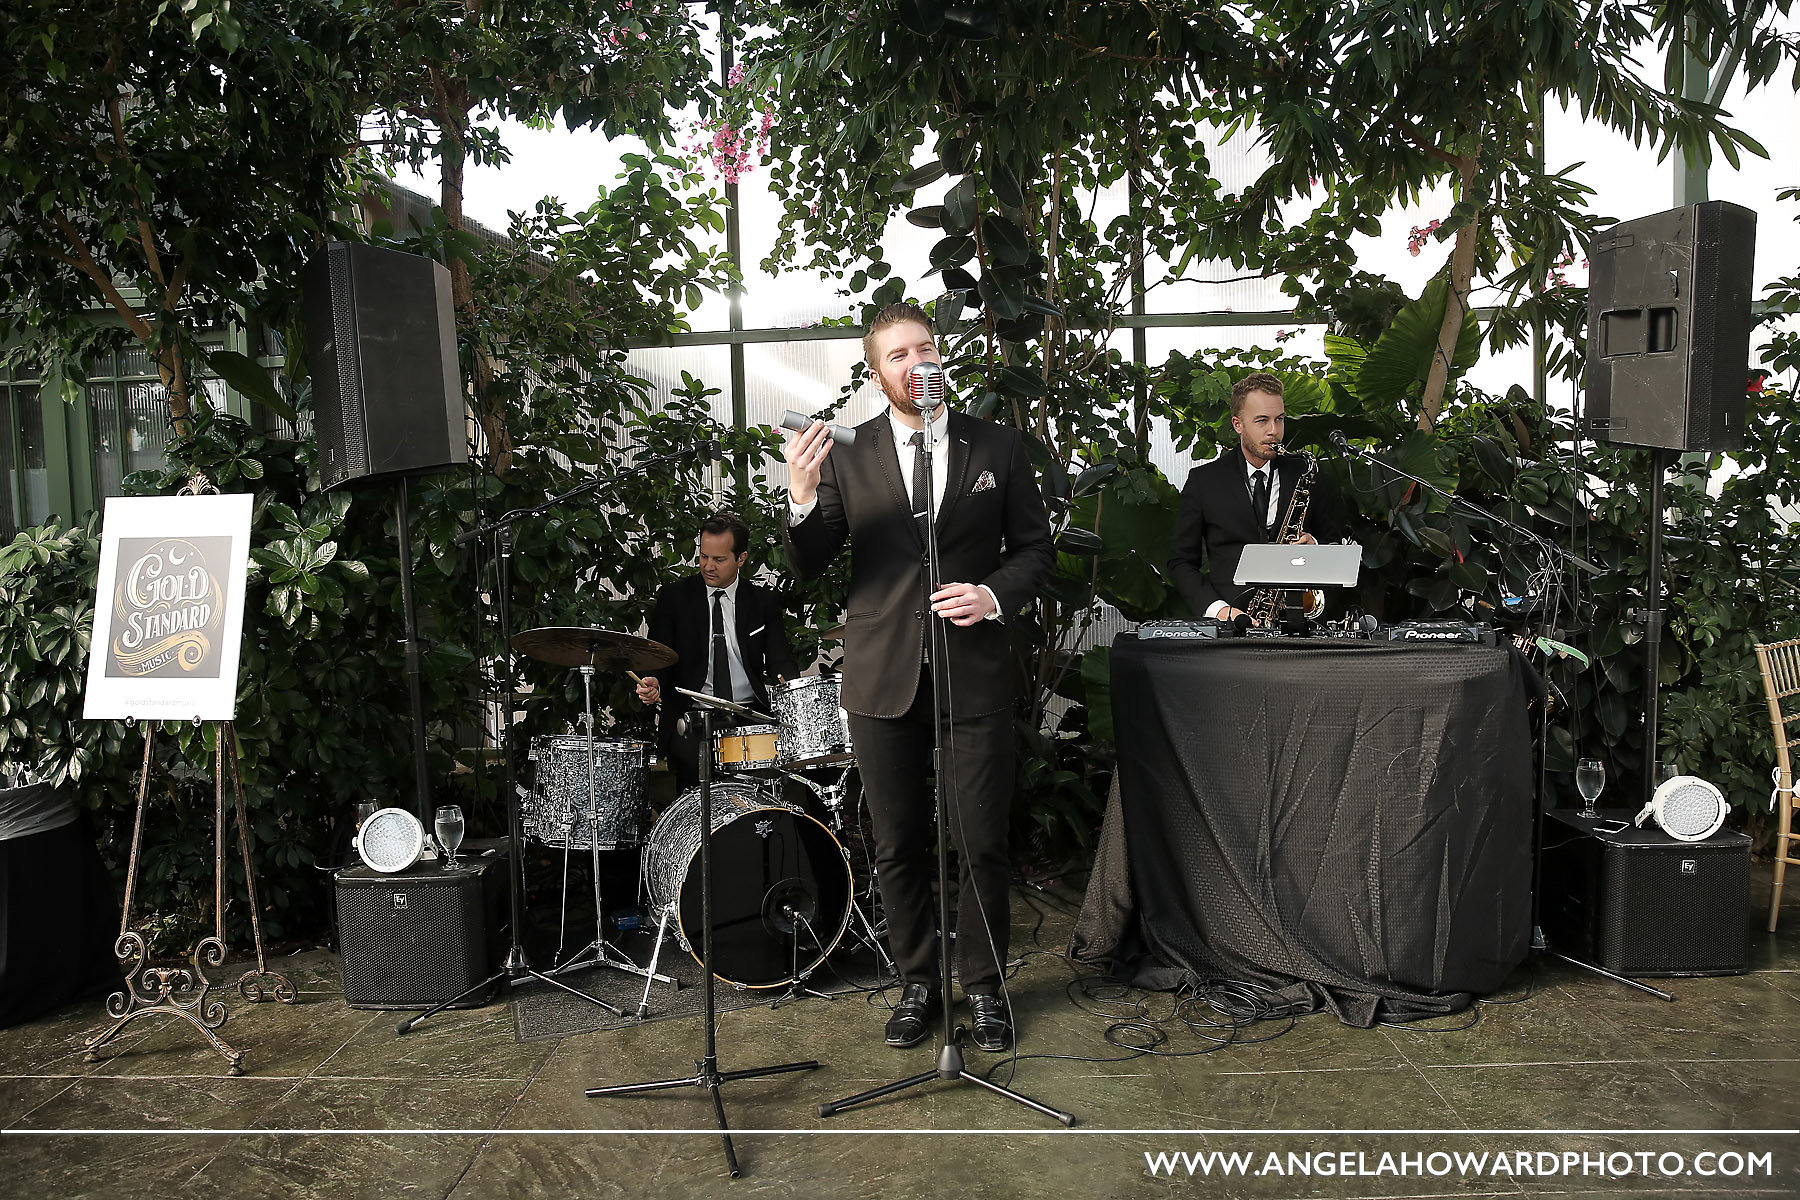 We loved laying down lush jazz/soul grooves in the deep green garden setting. @utahbridemag #UBGWhiteParty Photo credit: Angel Howard Photography